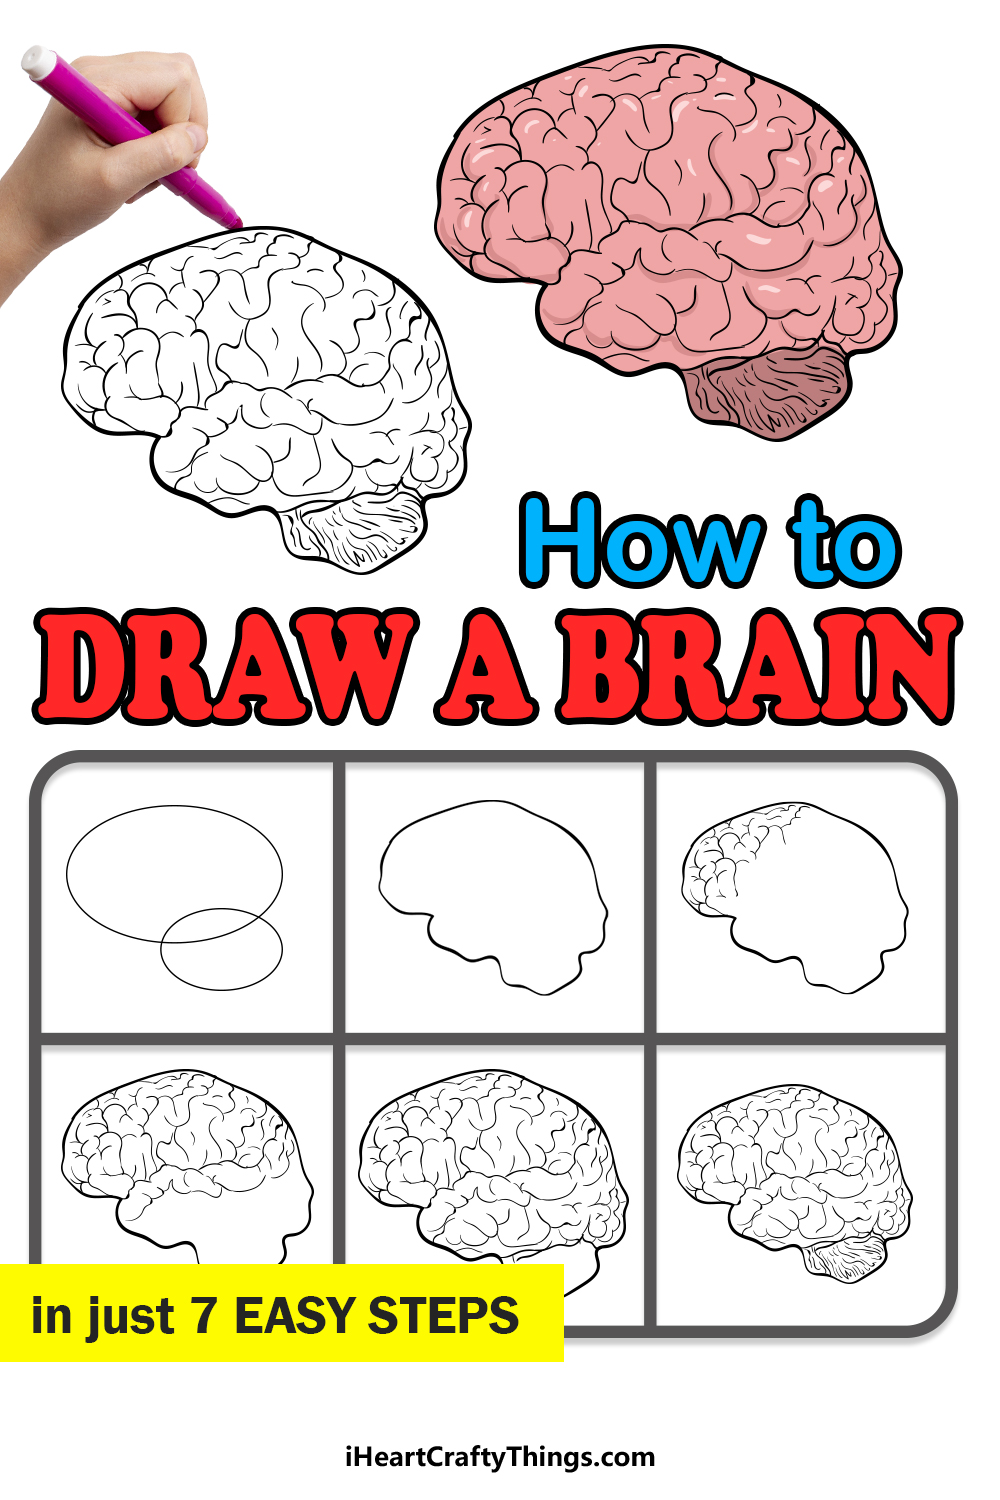 how to draw a brain in 7 easy steps